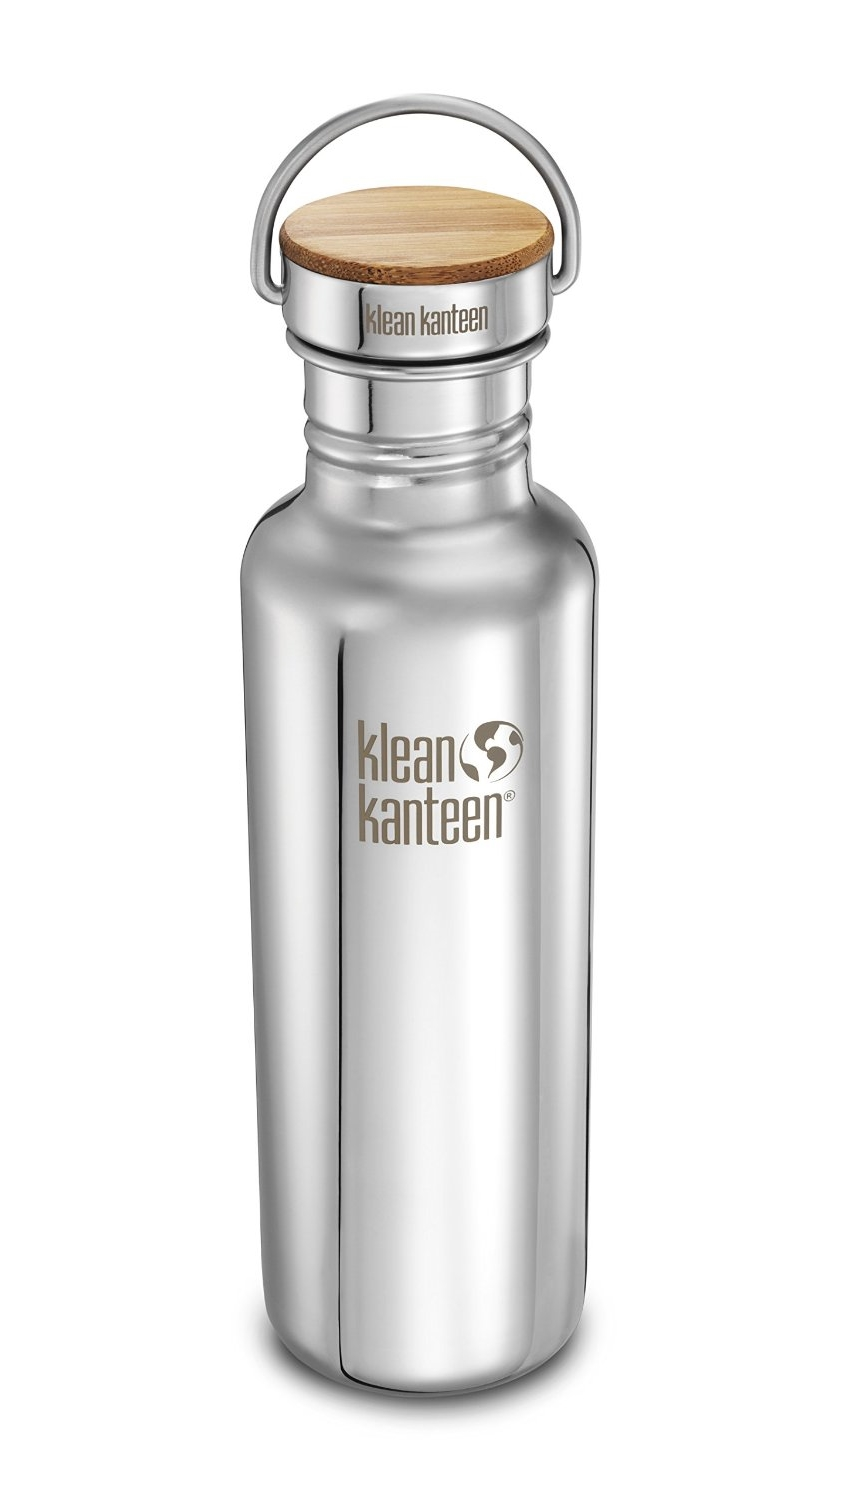 Kleen Kanteen Water Bottle.jpg